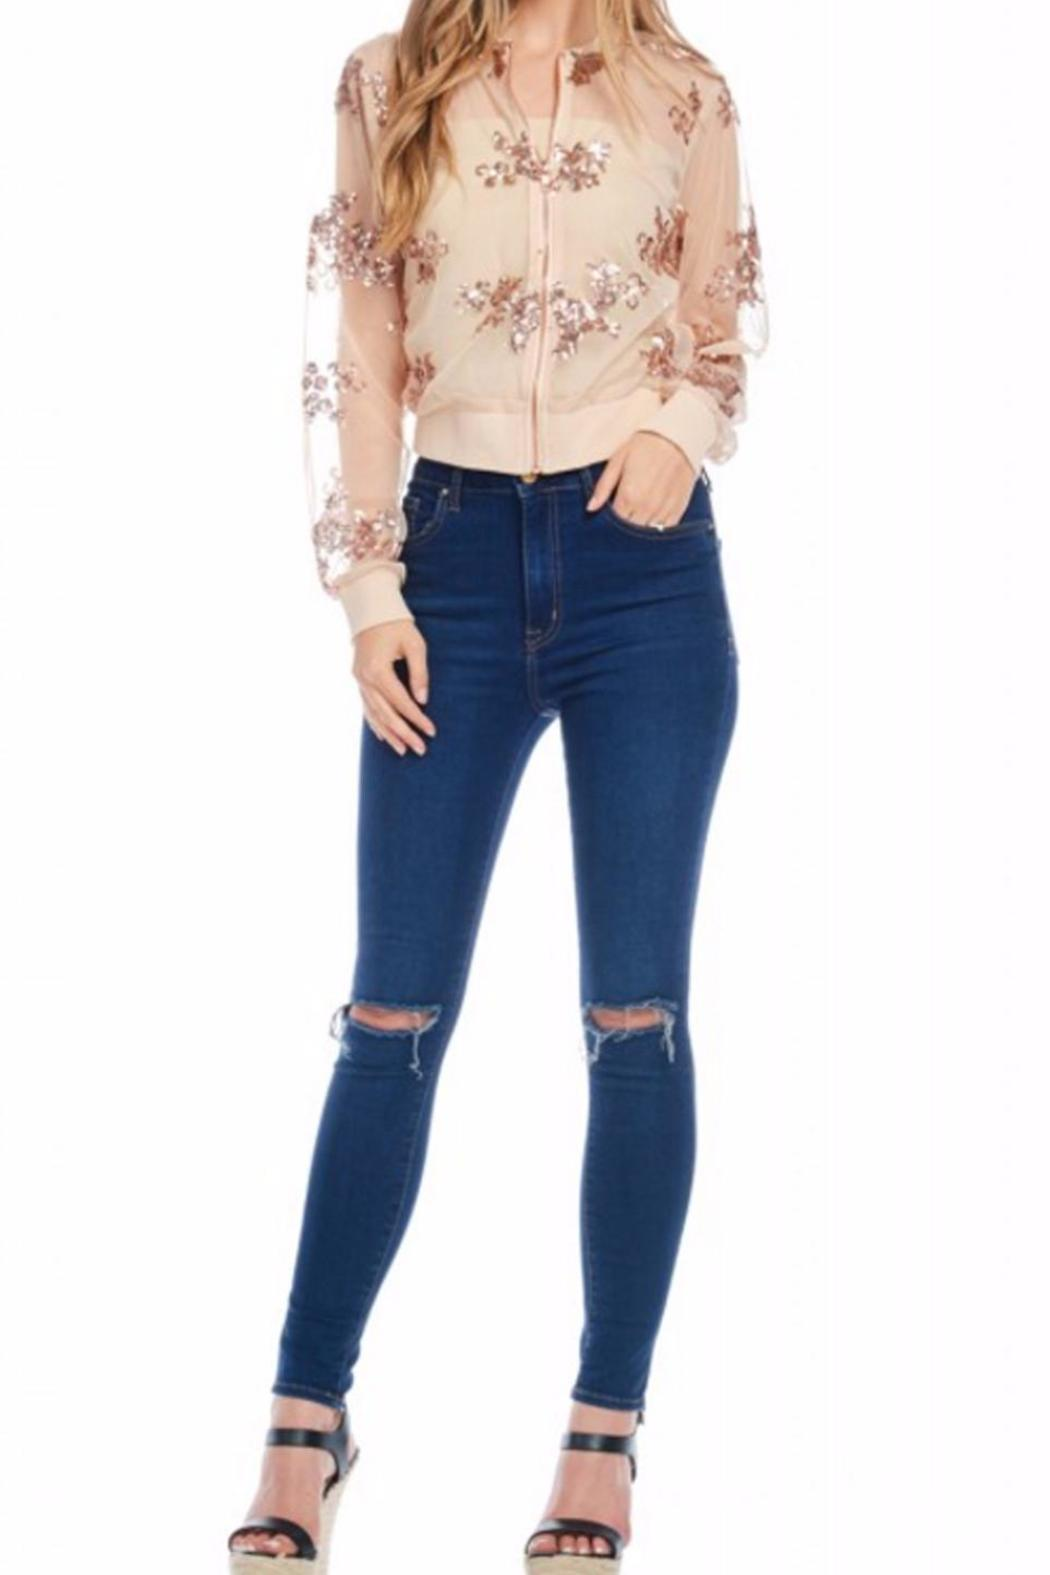 Gina Louise Cropped Sequin Jacket - Side Cropped Image